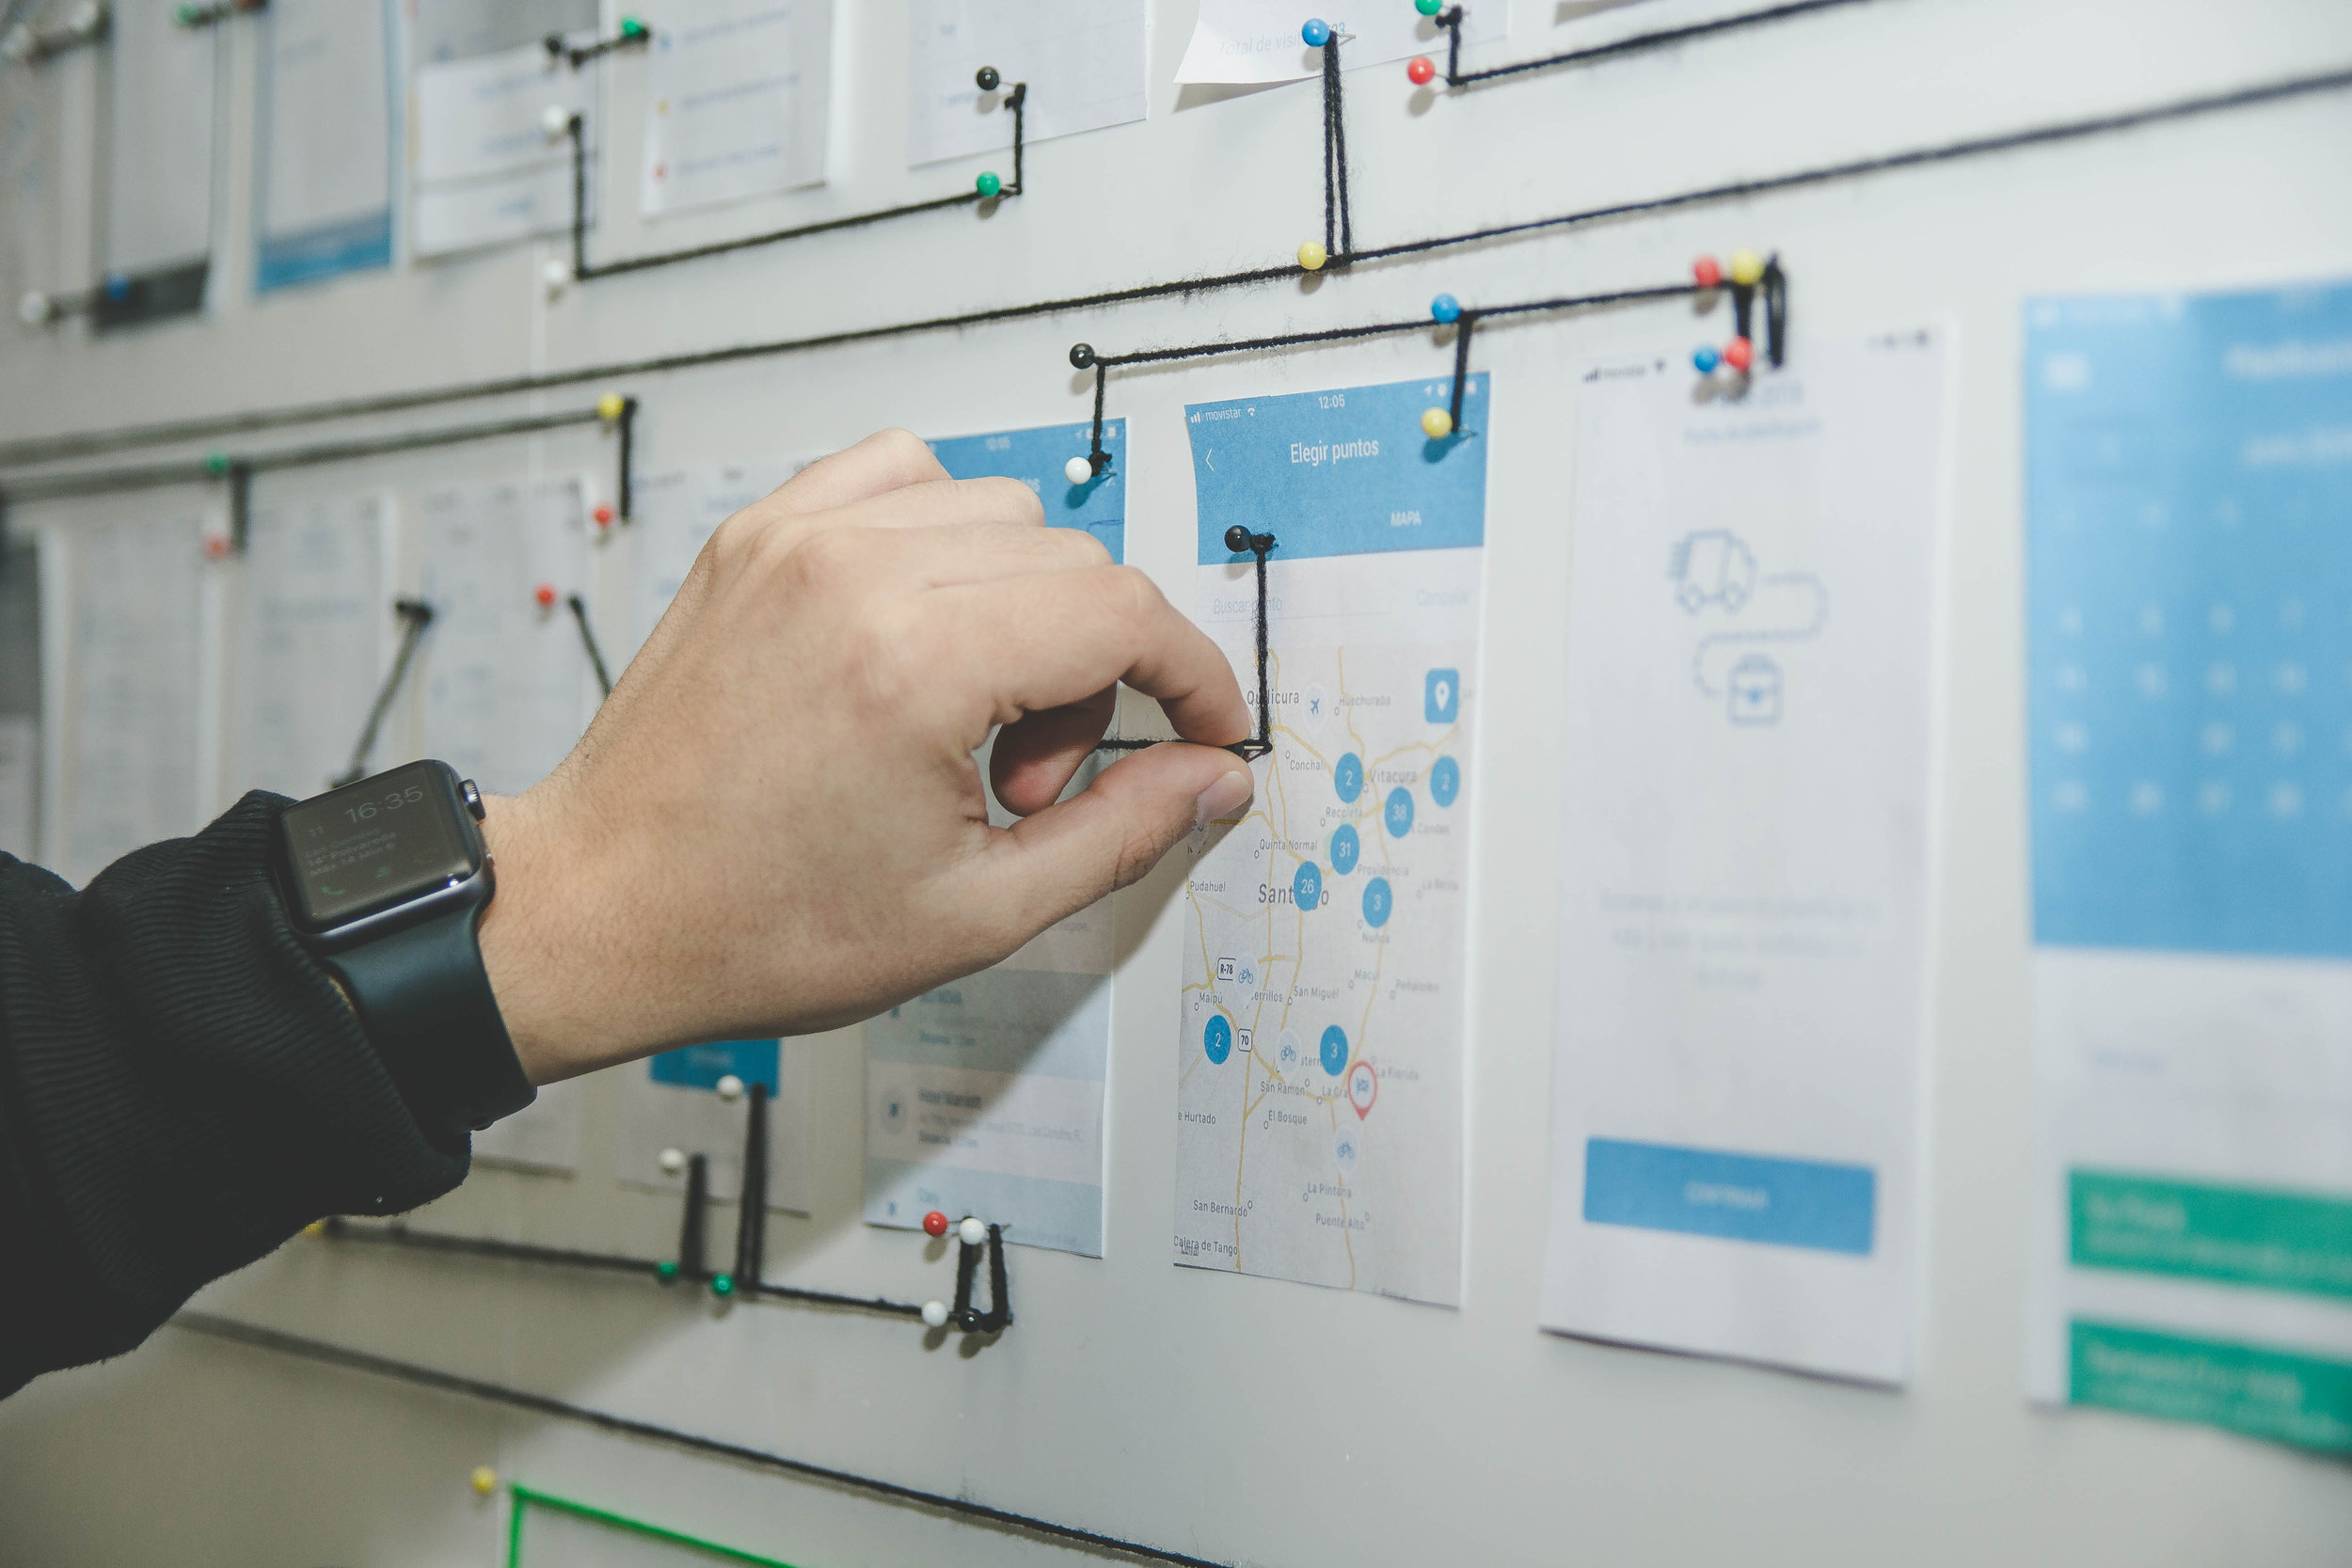 Customized roadmaps - Every project begins with a clear definition of the objectives. We help ensure there is a balance between your company preferences and the demands of customers and regulators.